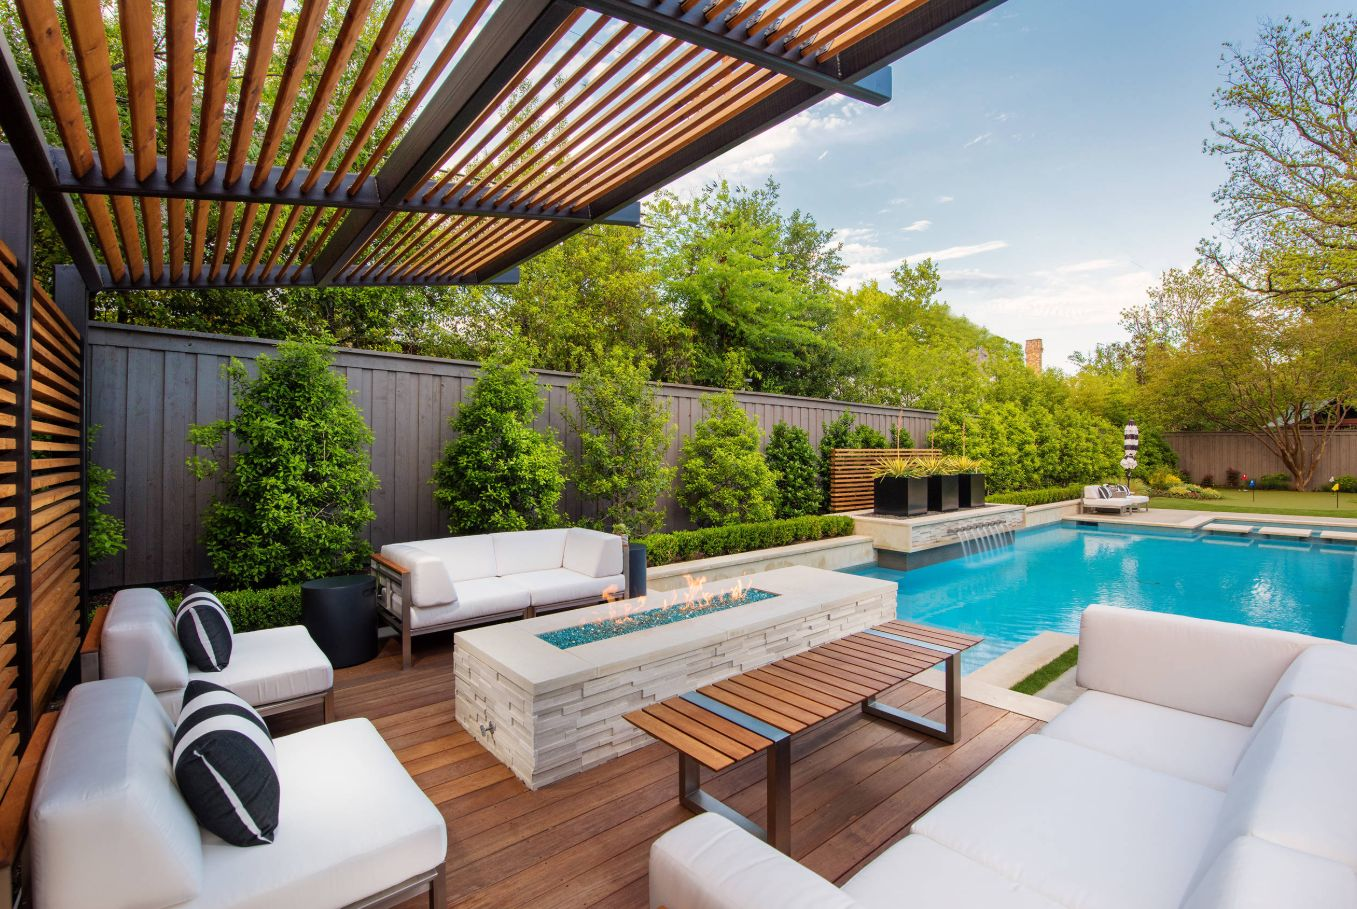 A mix of modern and contemporary pieces decorate this poolside patio.